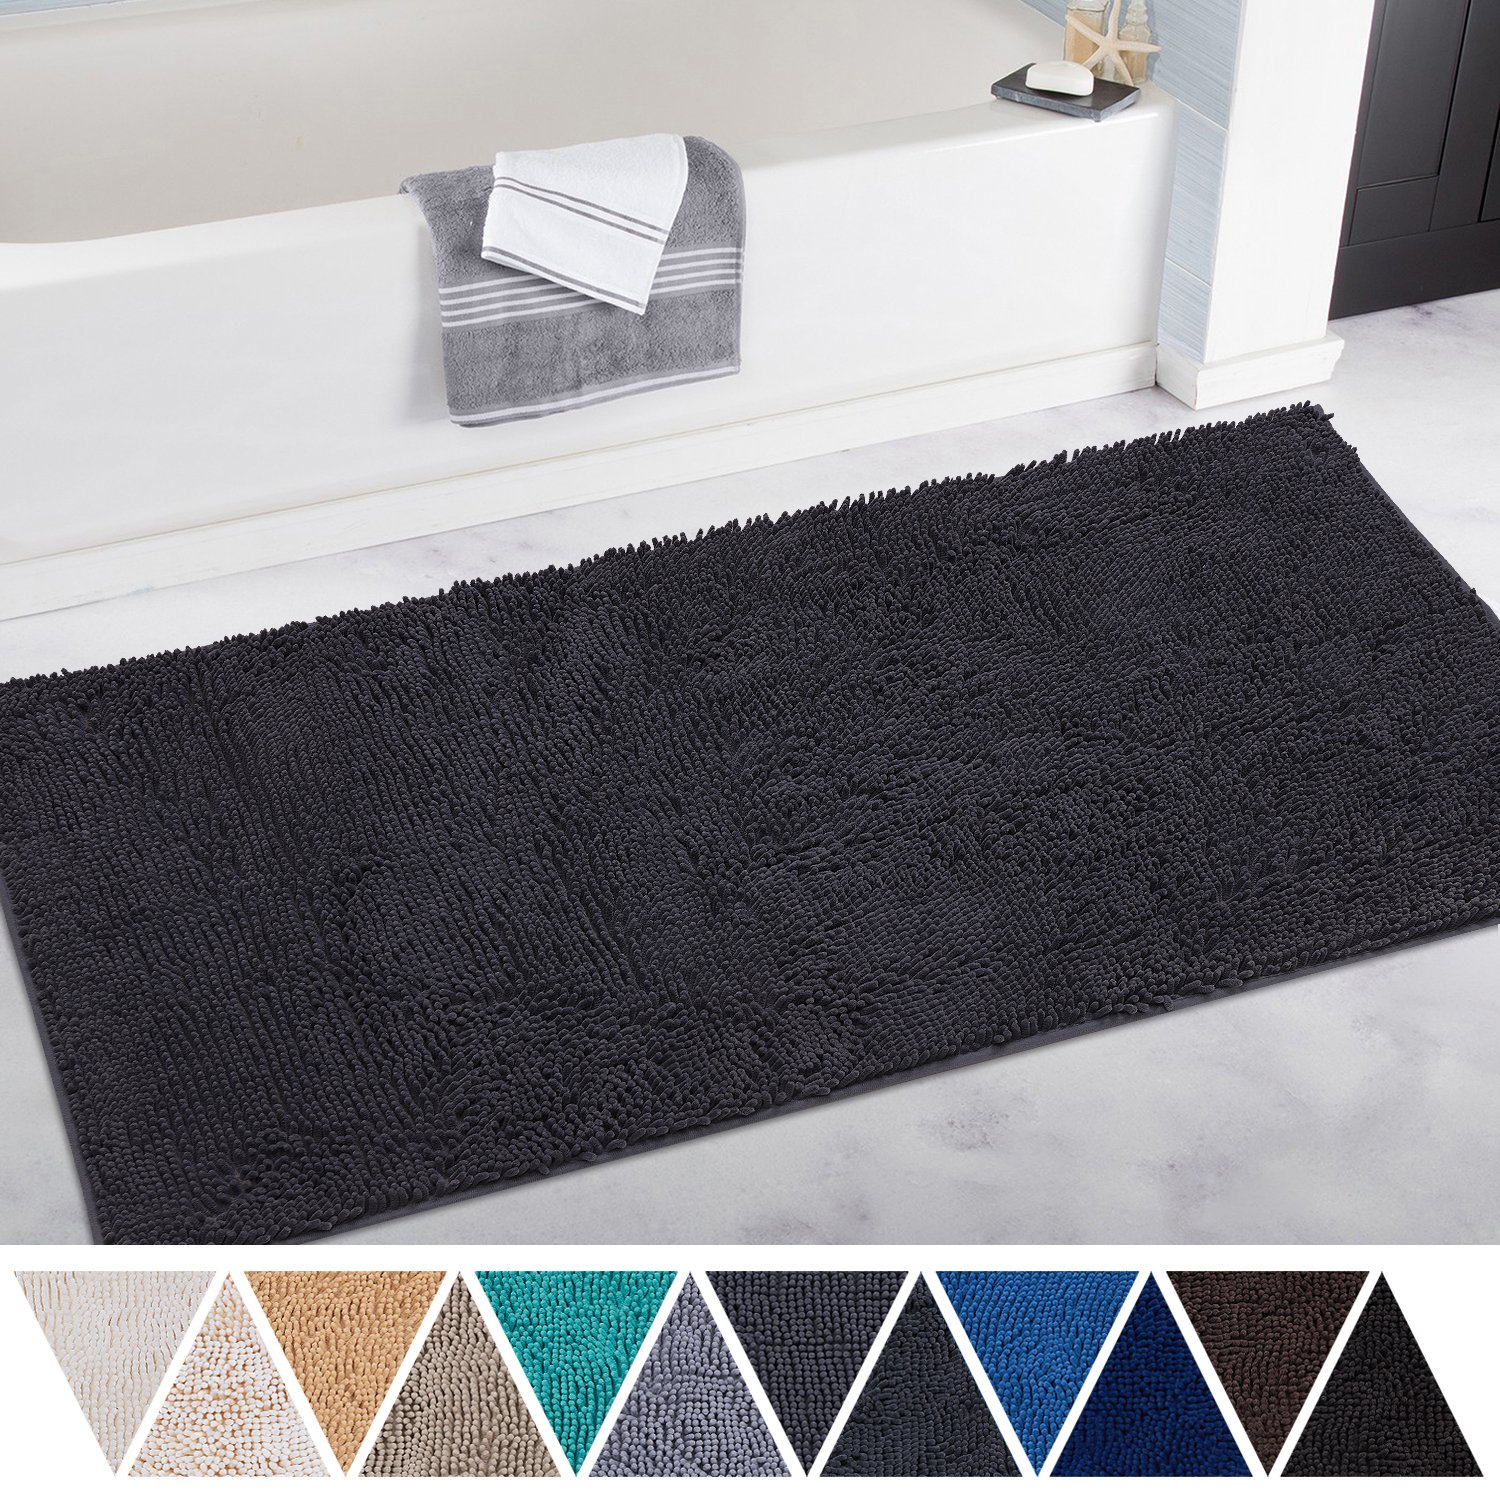 DEARTOWN Non-Slip Thick Microfiber Bathroom Rugs, Machine-Washable Bath Mats with Water Absorbent (27.5x47 Inches, Black)